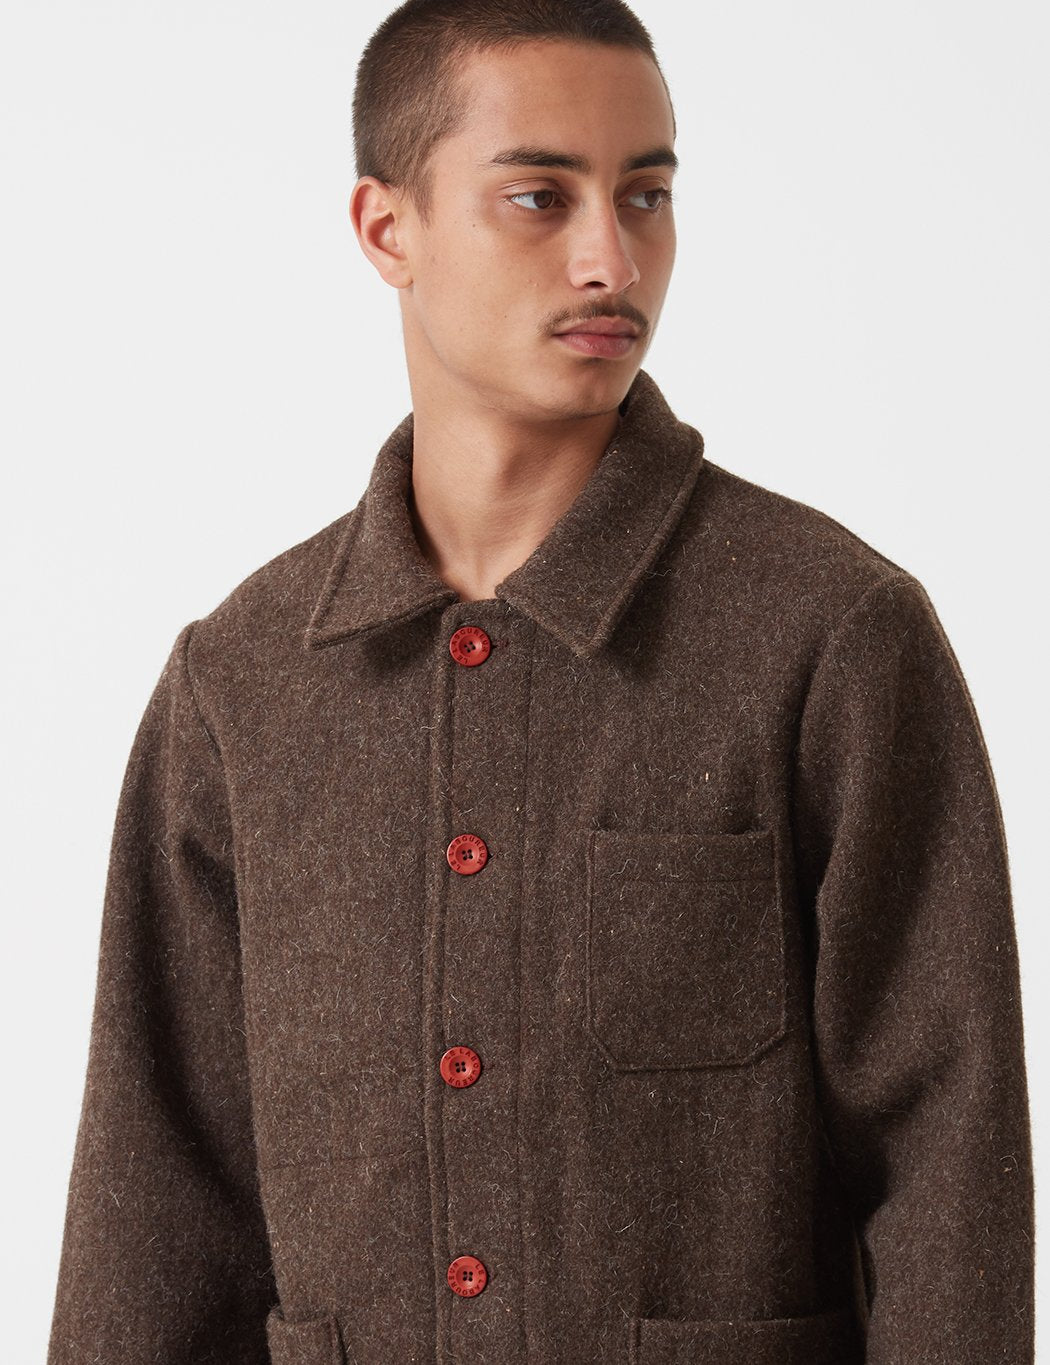 Le Laboureur Wolle Arbeitsjacke - Brown